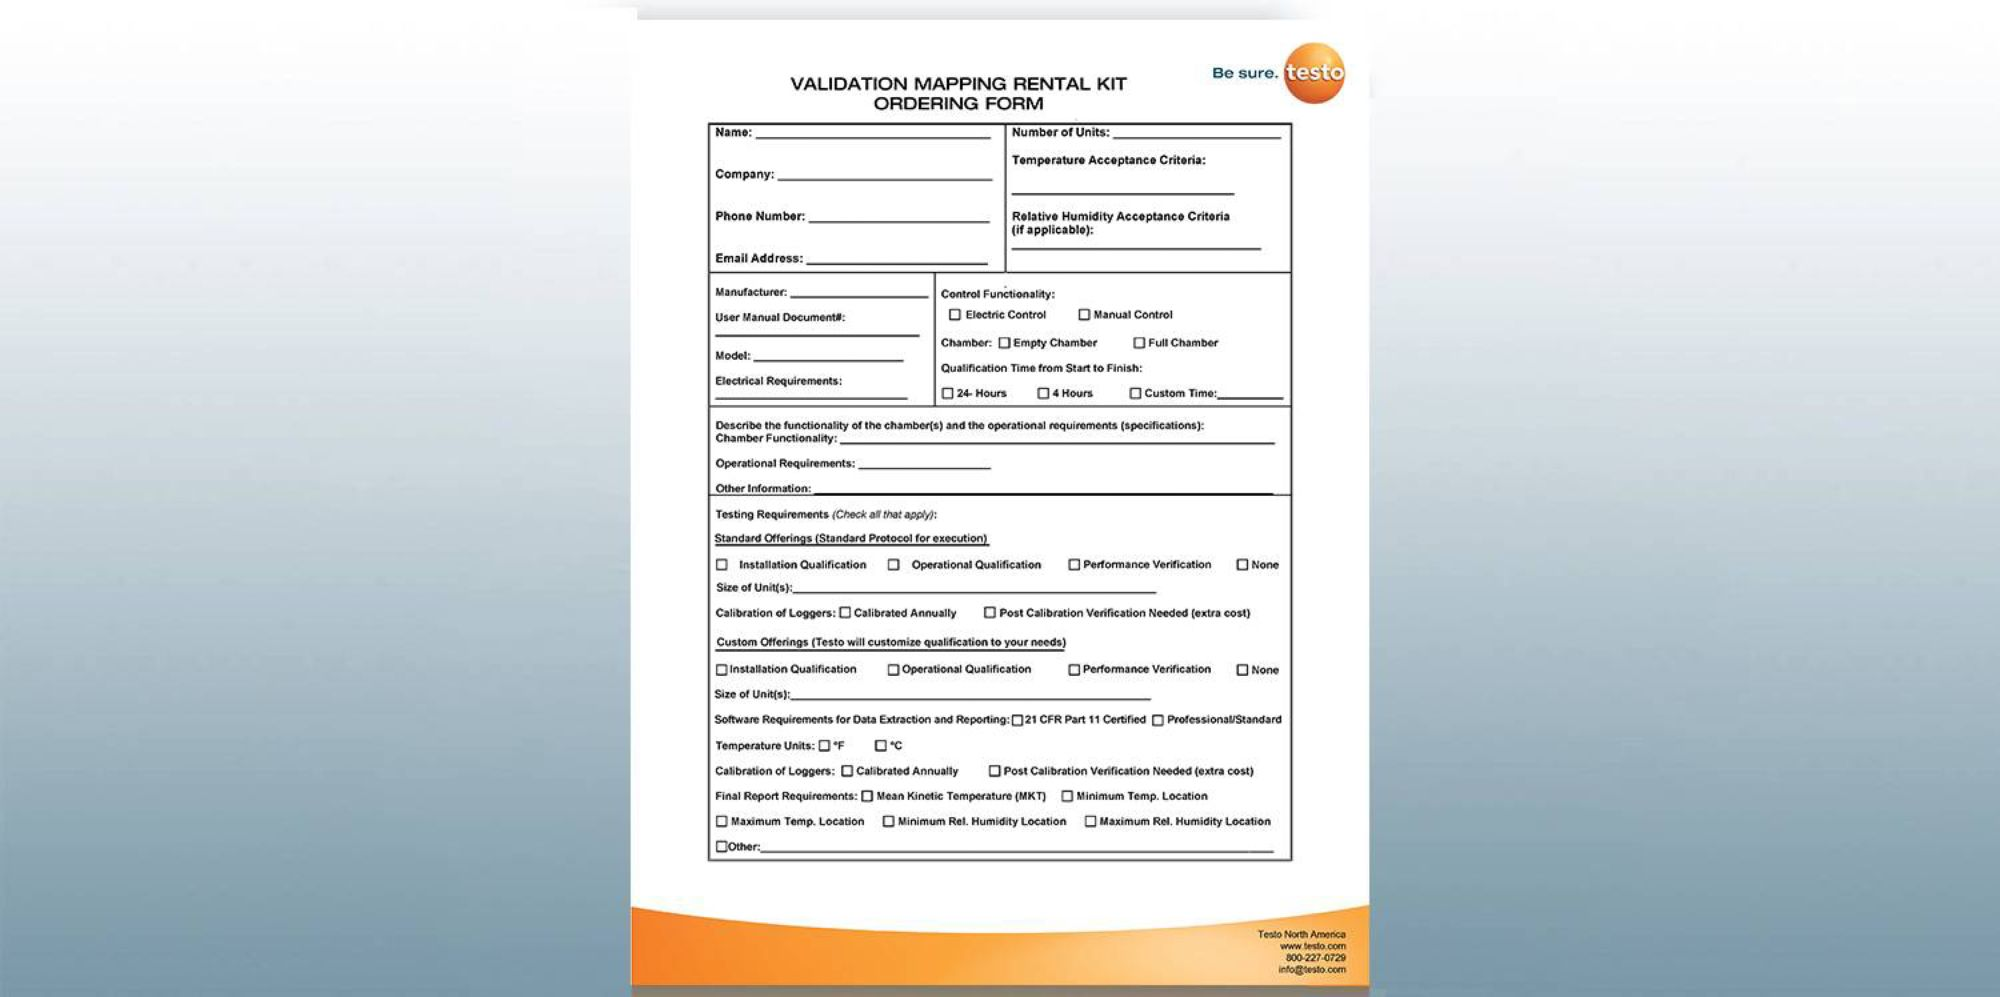 Validation Mapping Kit Rental Form